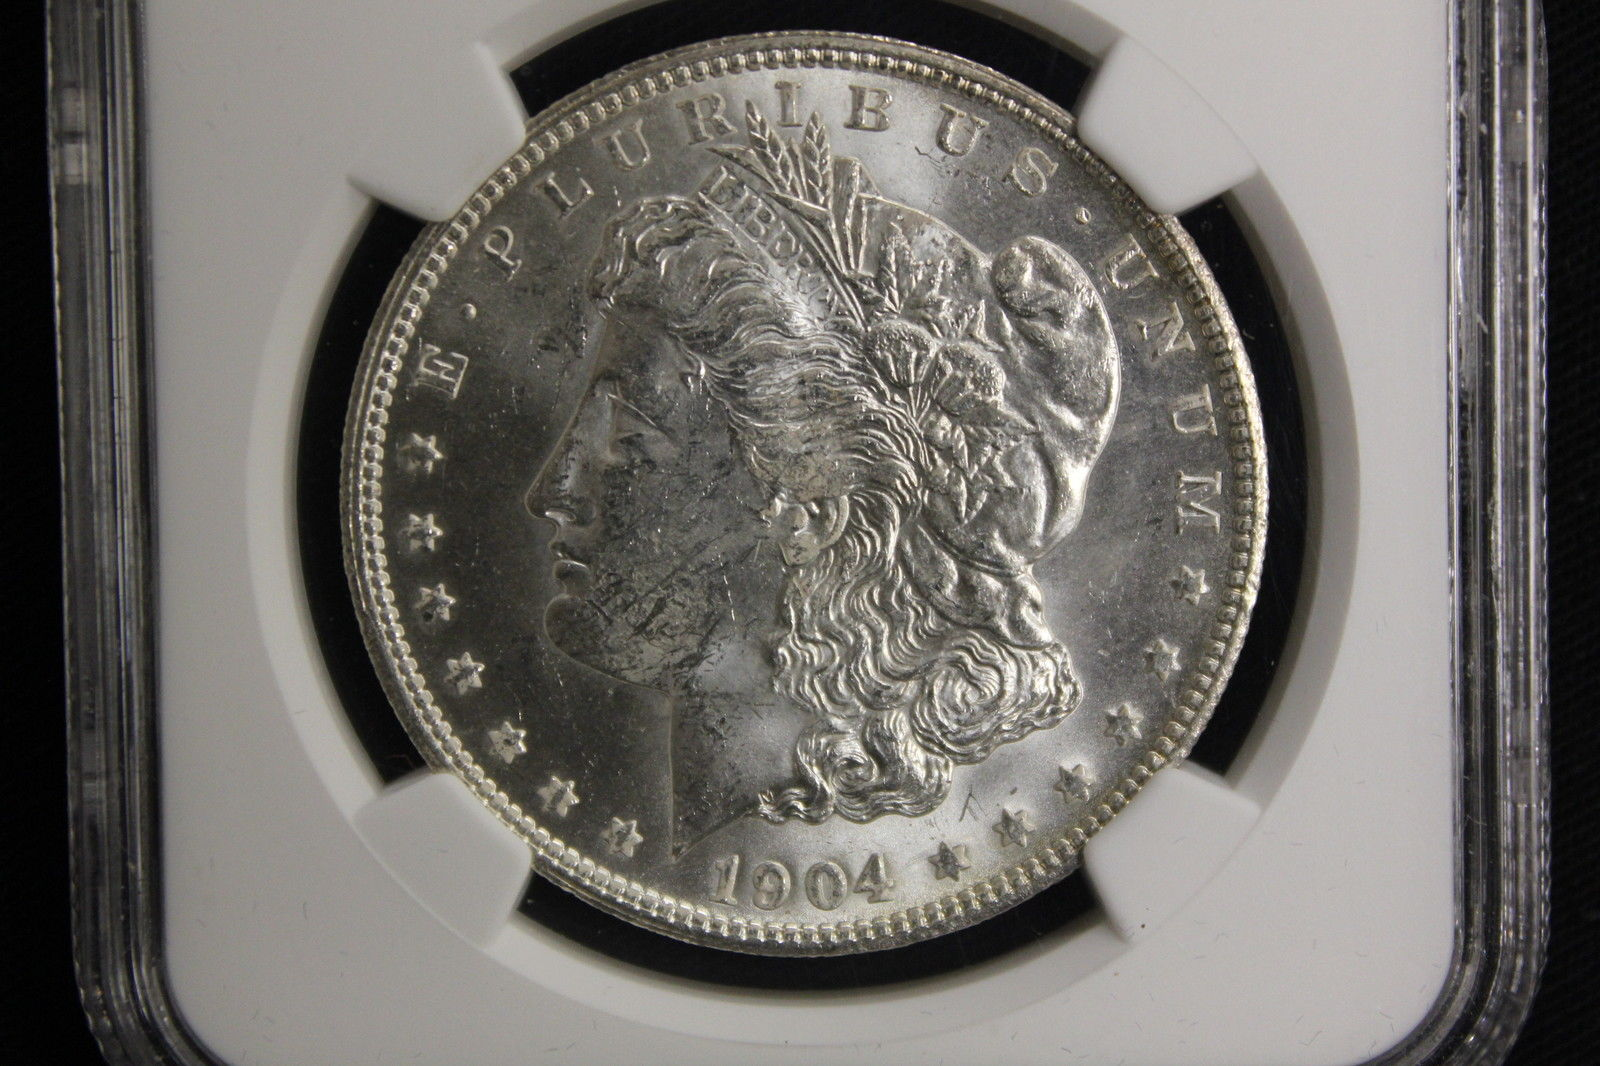 1904-O Morgan Silver Dollar $1 New Certified NGC MS63 Bright White Luster